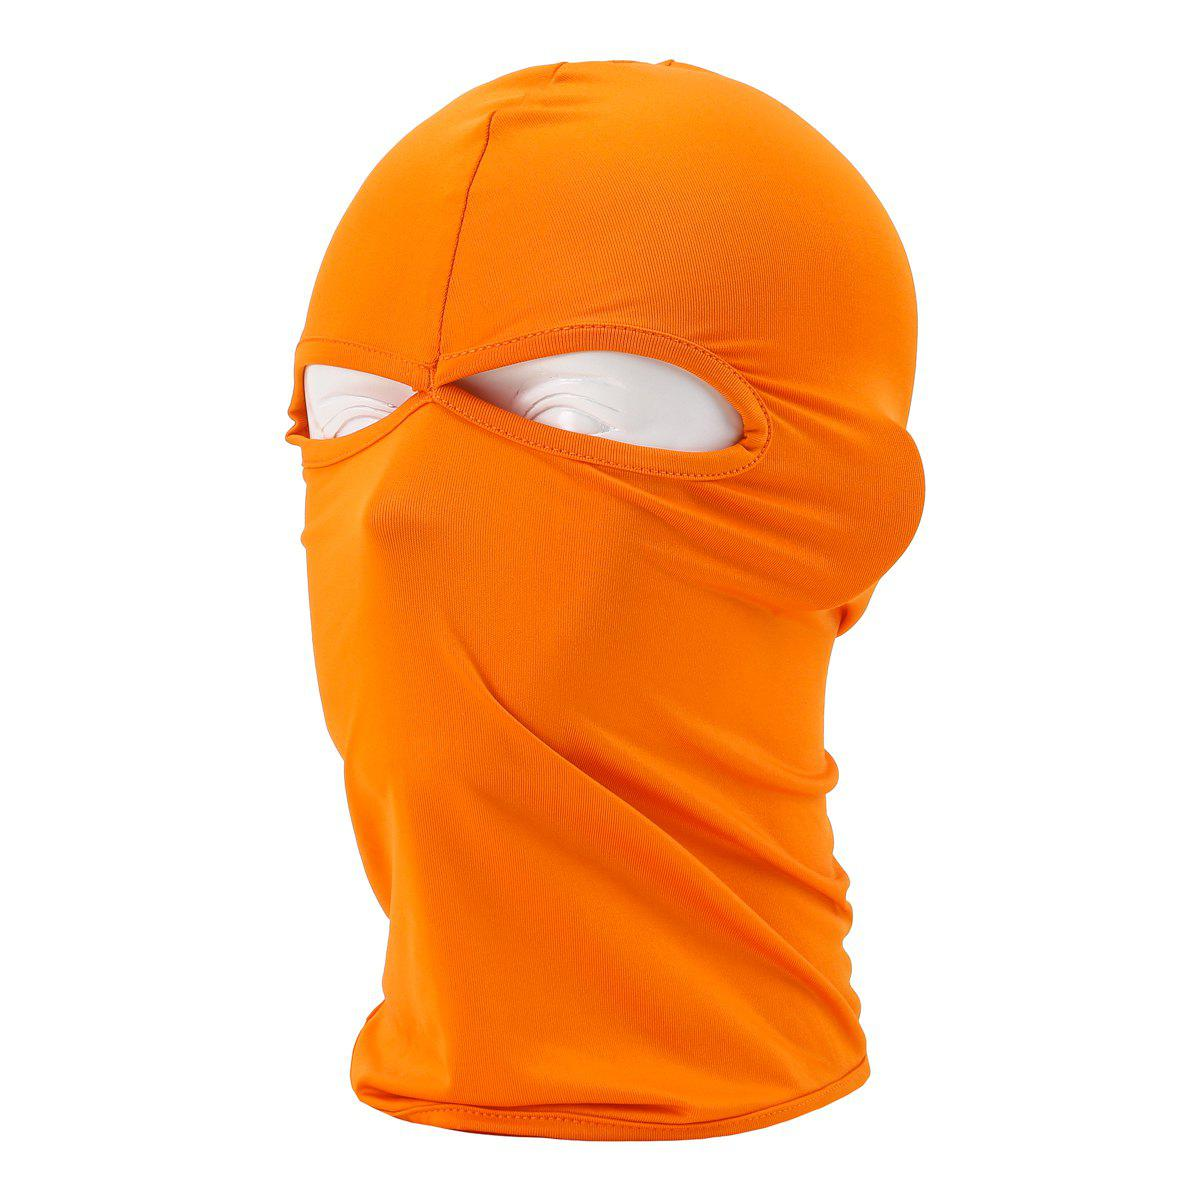 Sun Protective Wrapped Head Cap Mask with Double Orifice for Outdoor Cycling and Fishing etc. - ORANGE